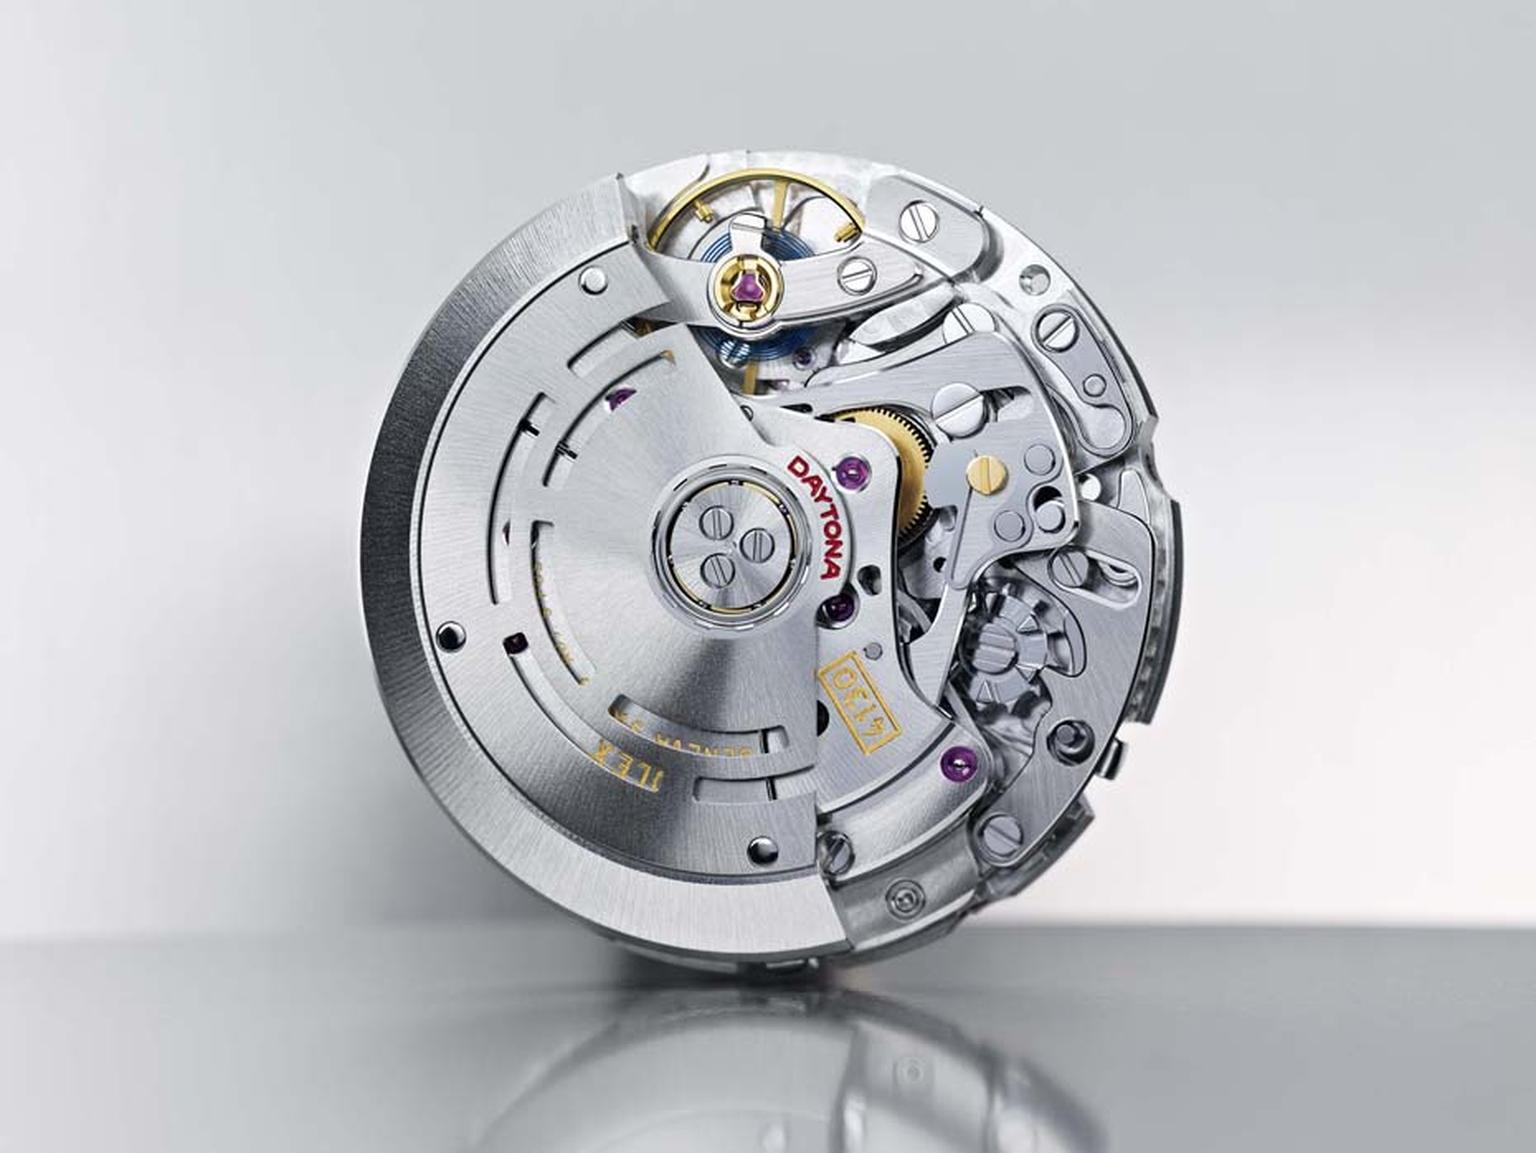 Rolex_Rolex Watch_Movement 4130.jpg